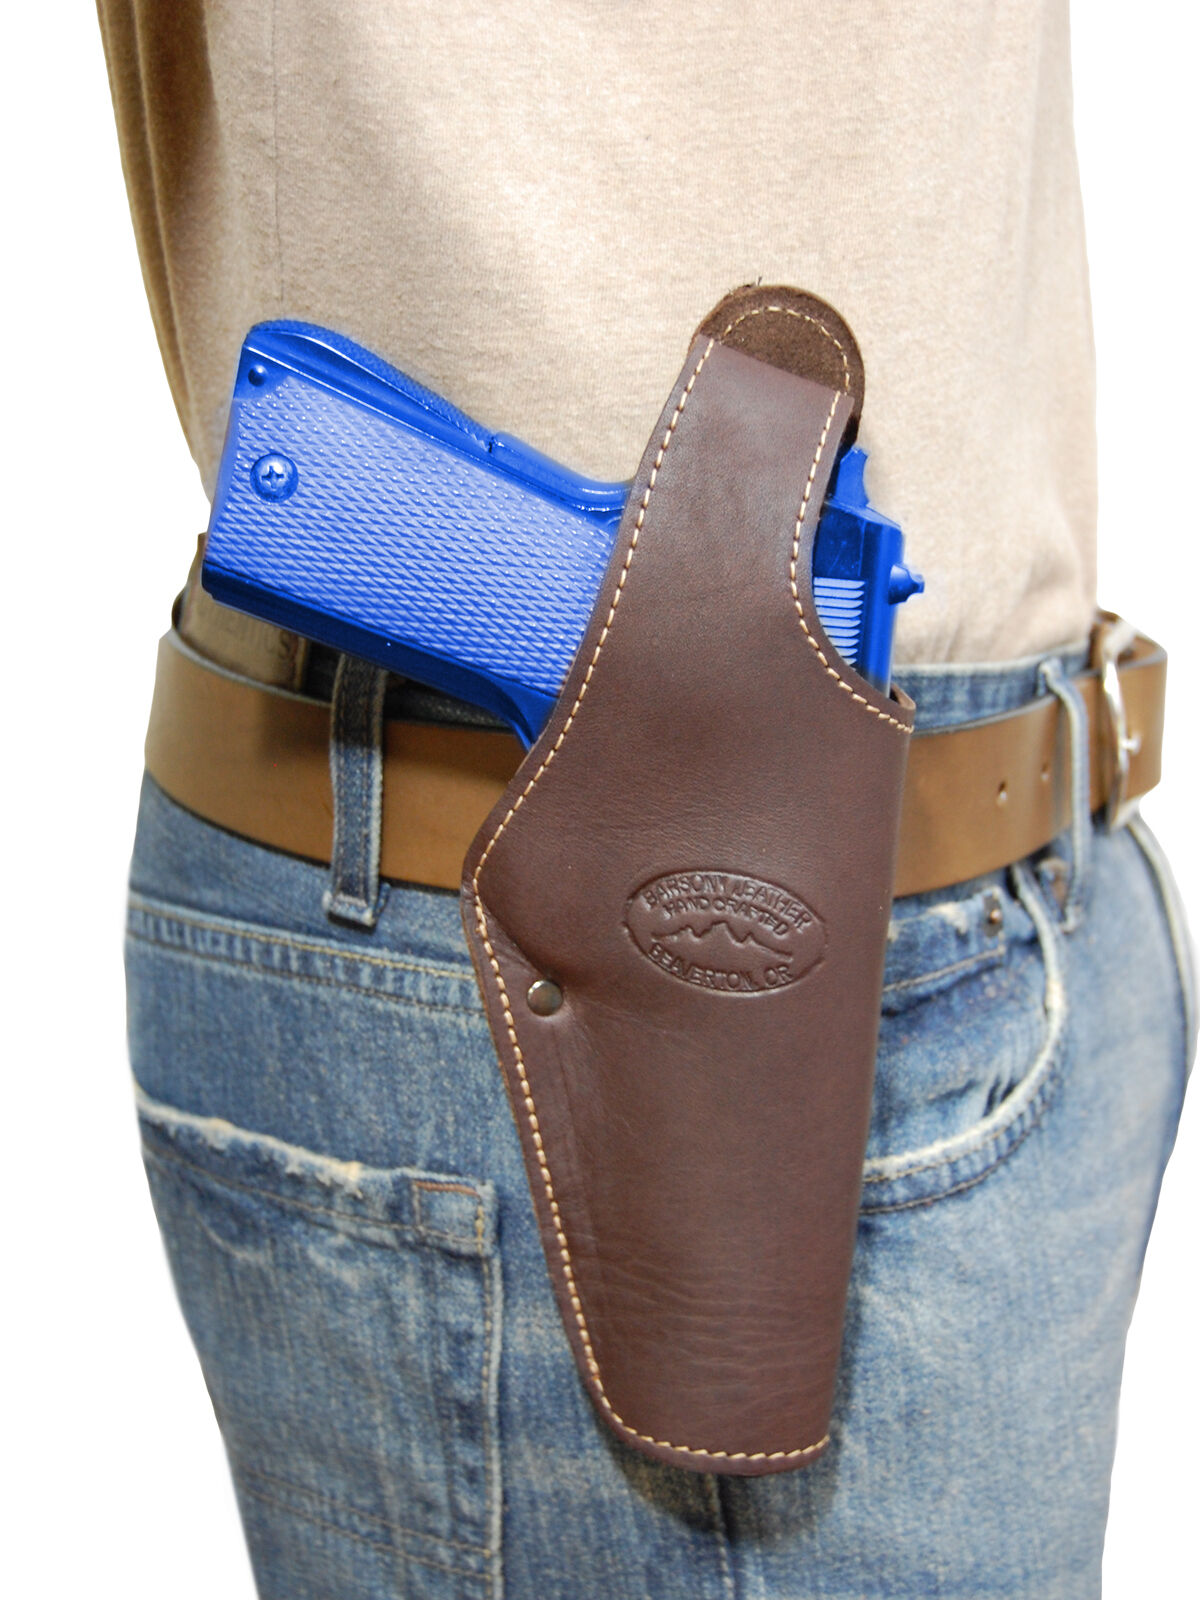 New Barsony Brown Leather Belt OWB Holster for CZ, EAA Full Size 9mm 40 45